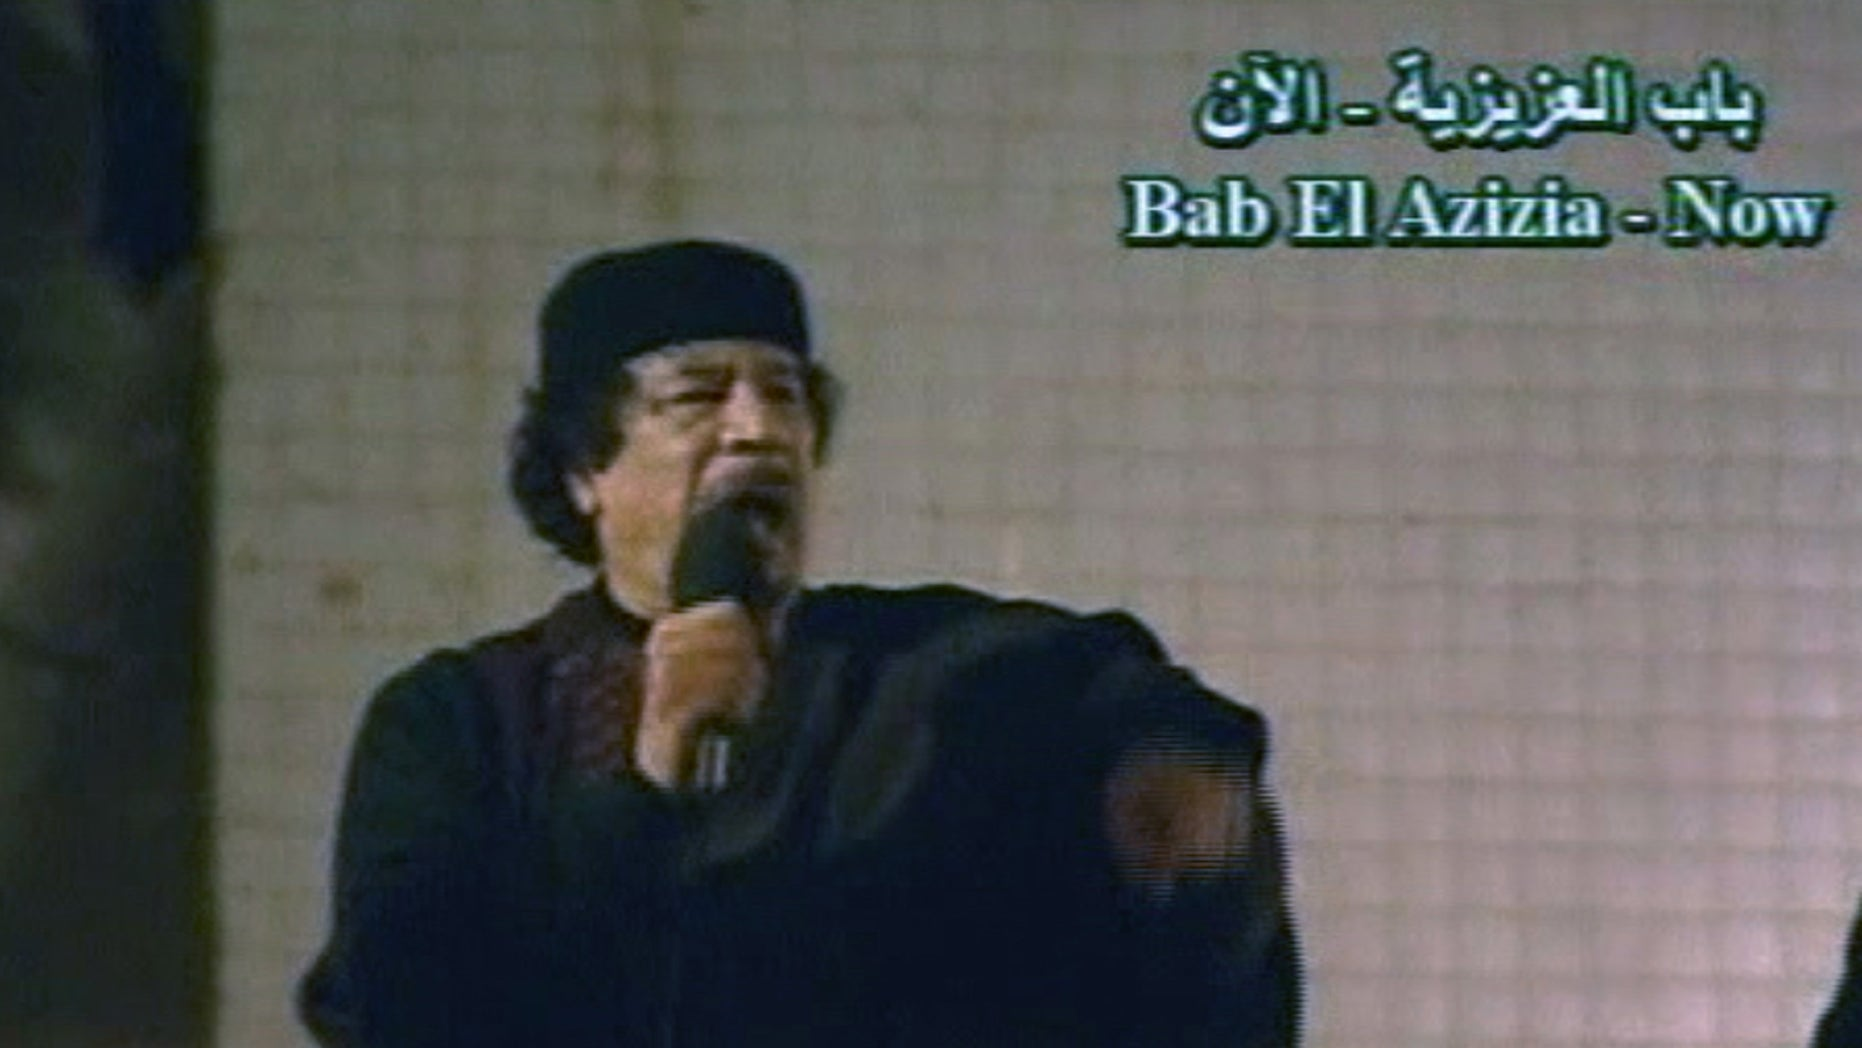 March 22: In this image taken from Libyan State TV, Libyan leader Muammar Qaddafi talks to a large crowd in Bab El Azizia, Libya. (AP)